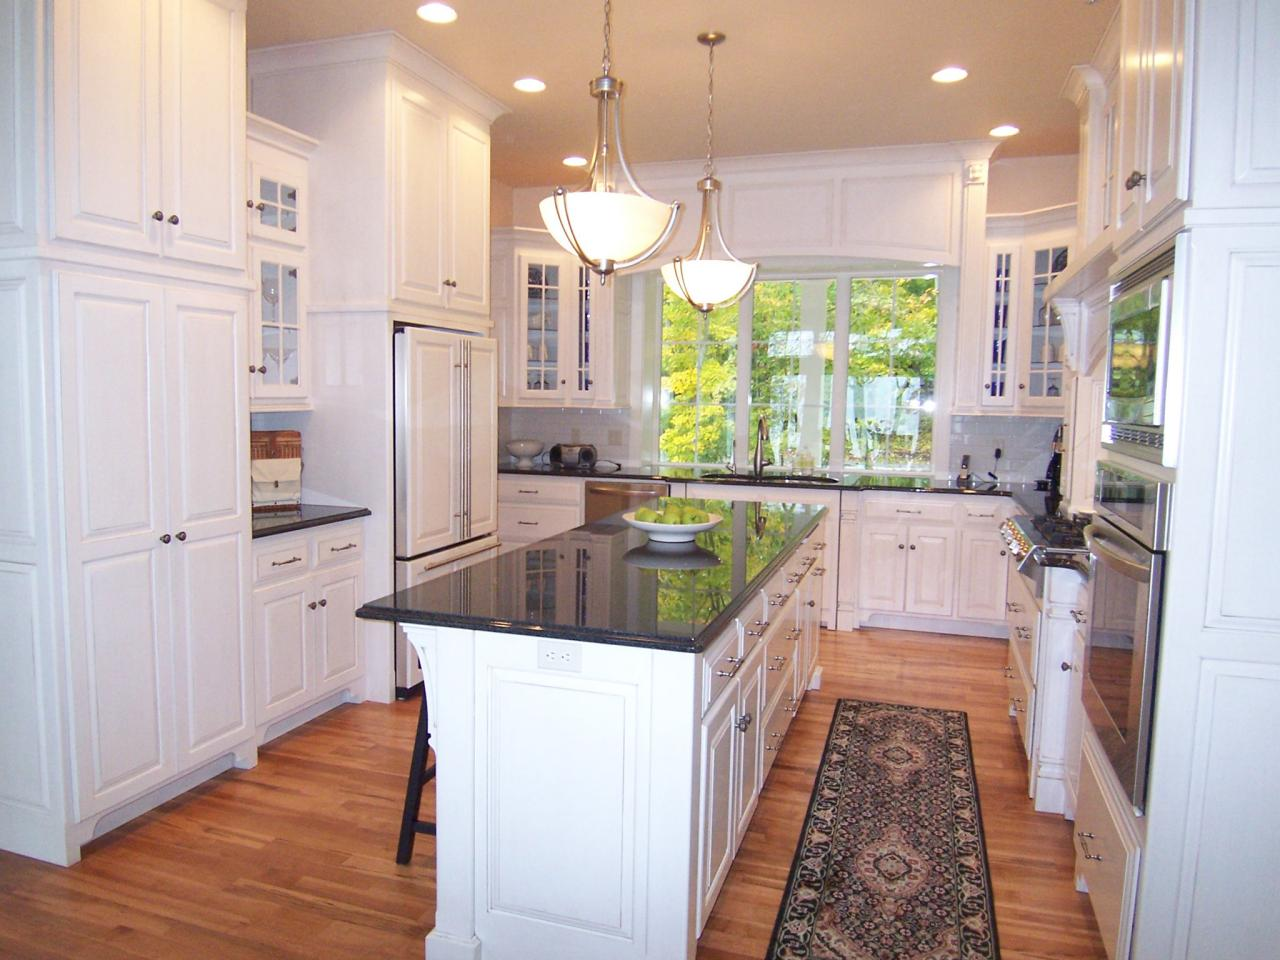 U shaped kitchen design ideas pictures ideas from hgtv for 5 x 20 kitchen ideas